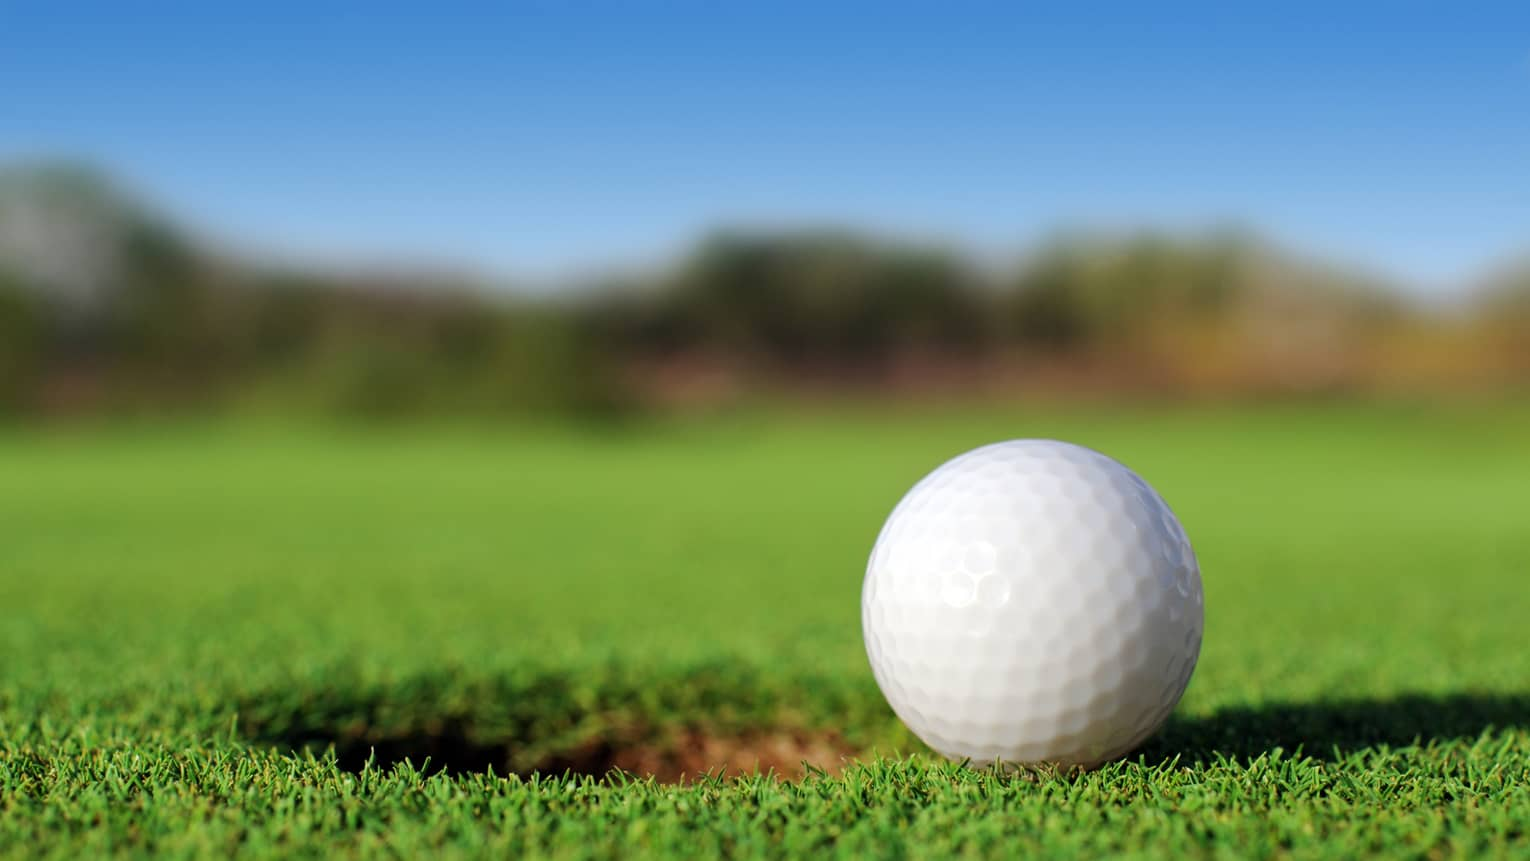 A close up of a white golf ball sitting right next to a golf hole on the course